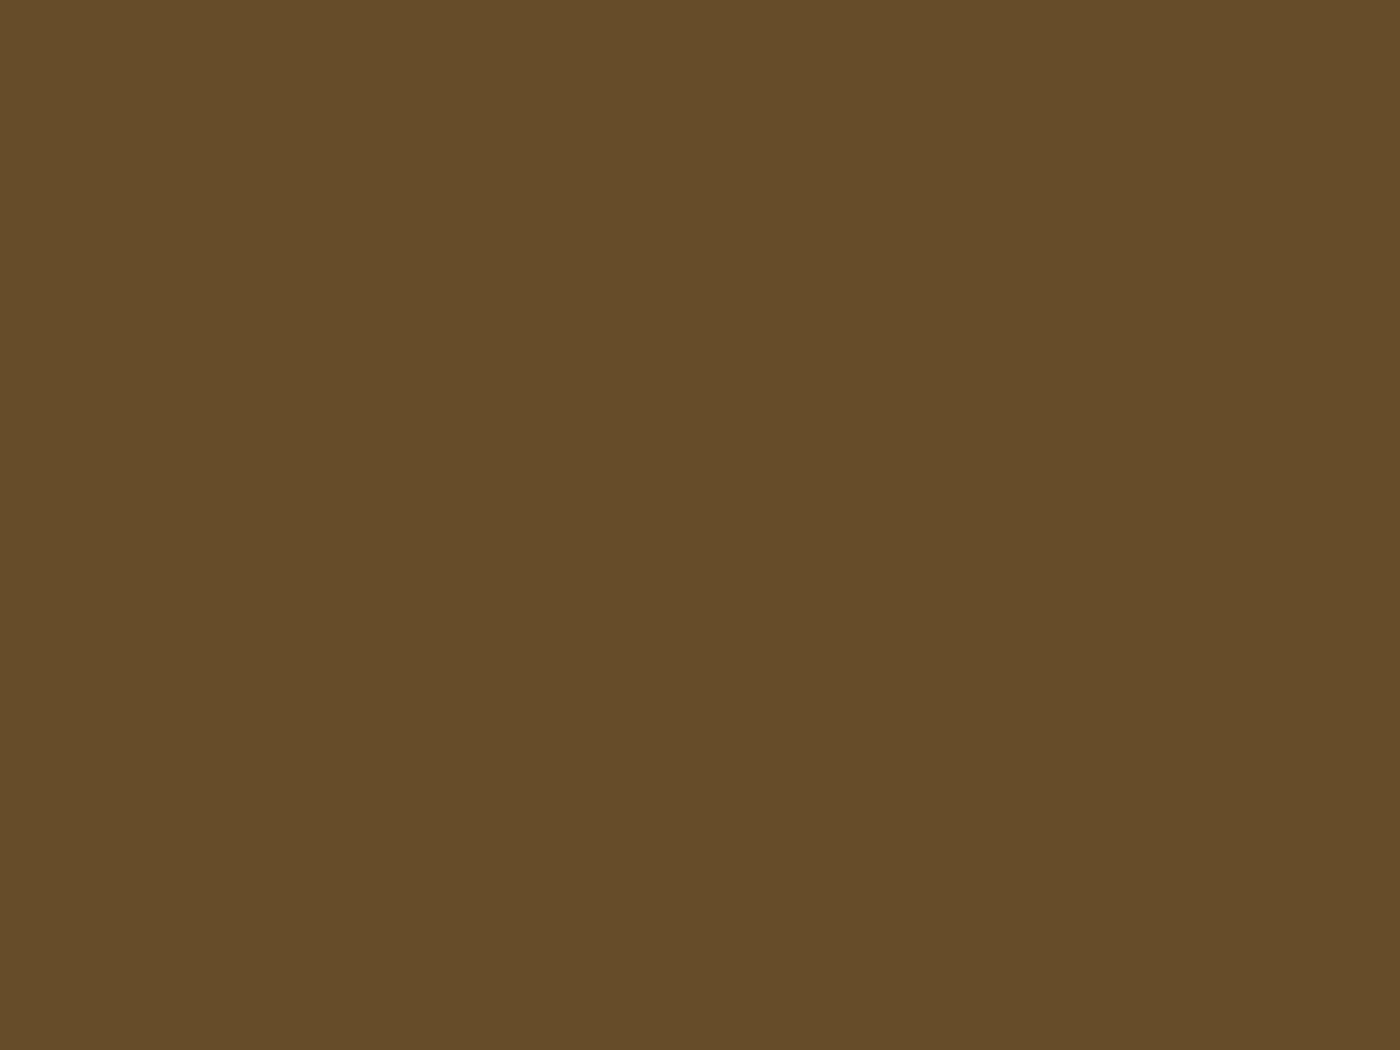 1400x1050 Donkey Brown Solid Color Background